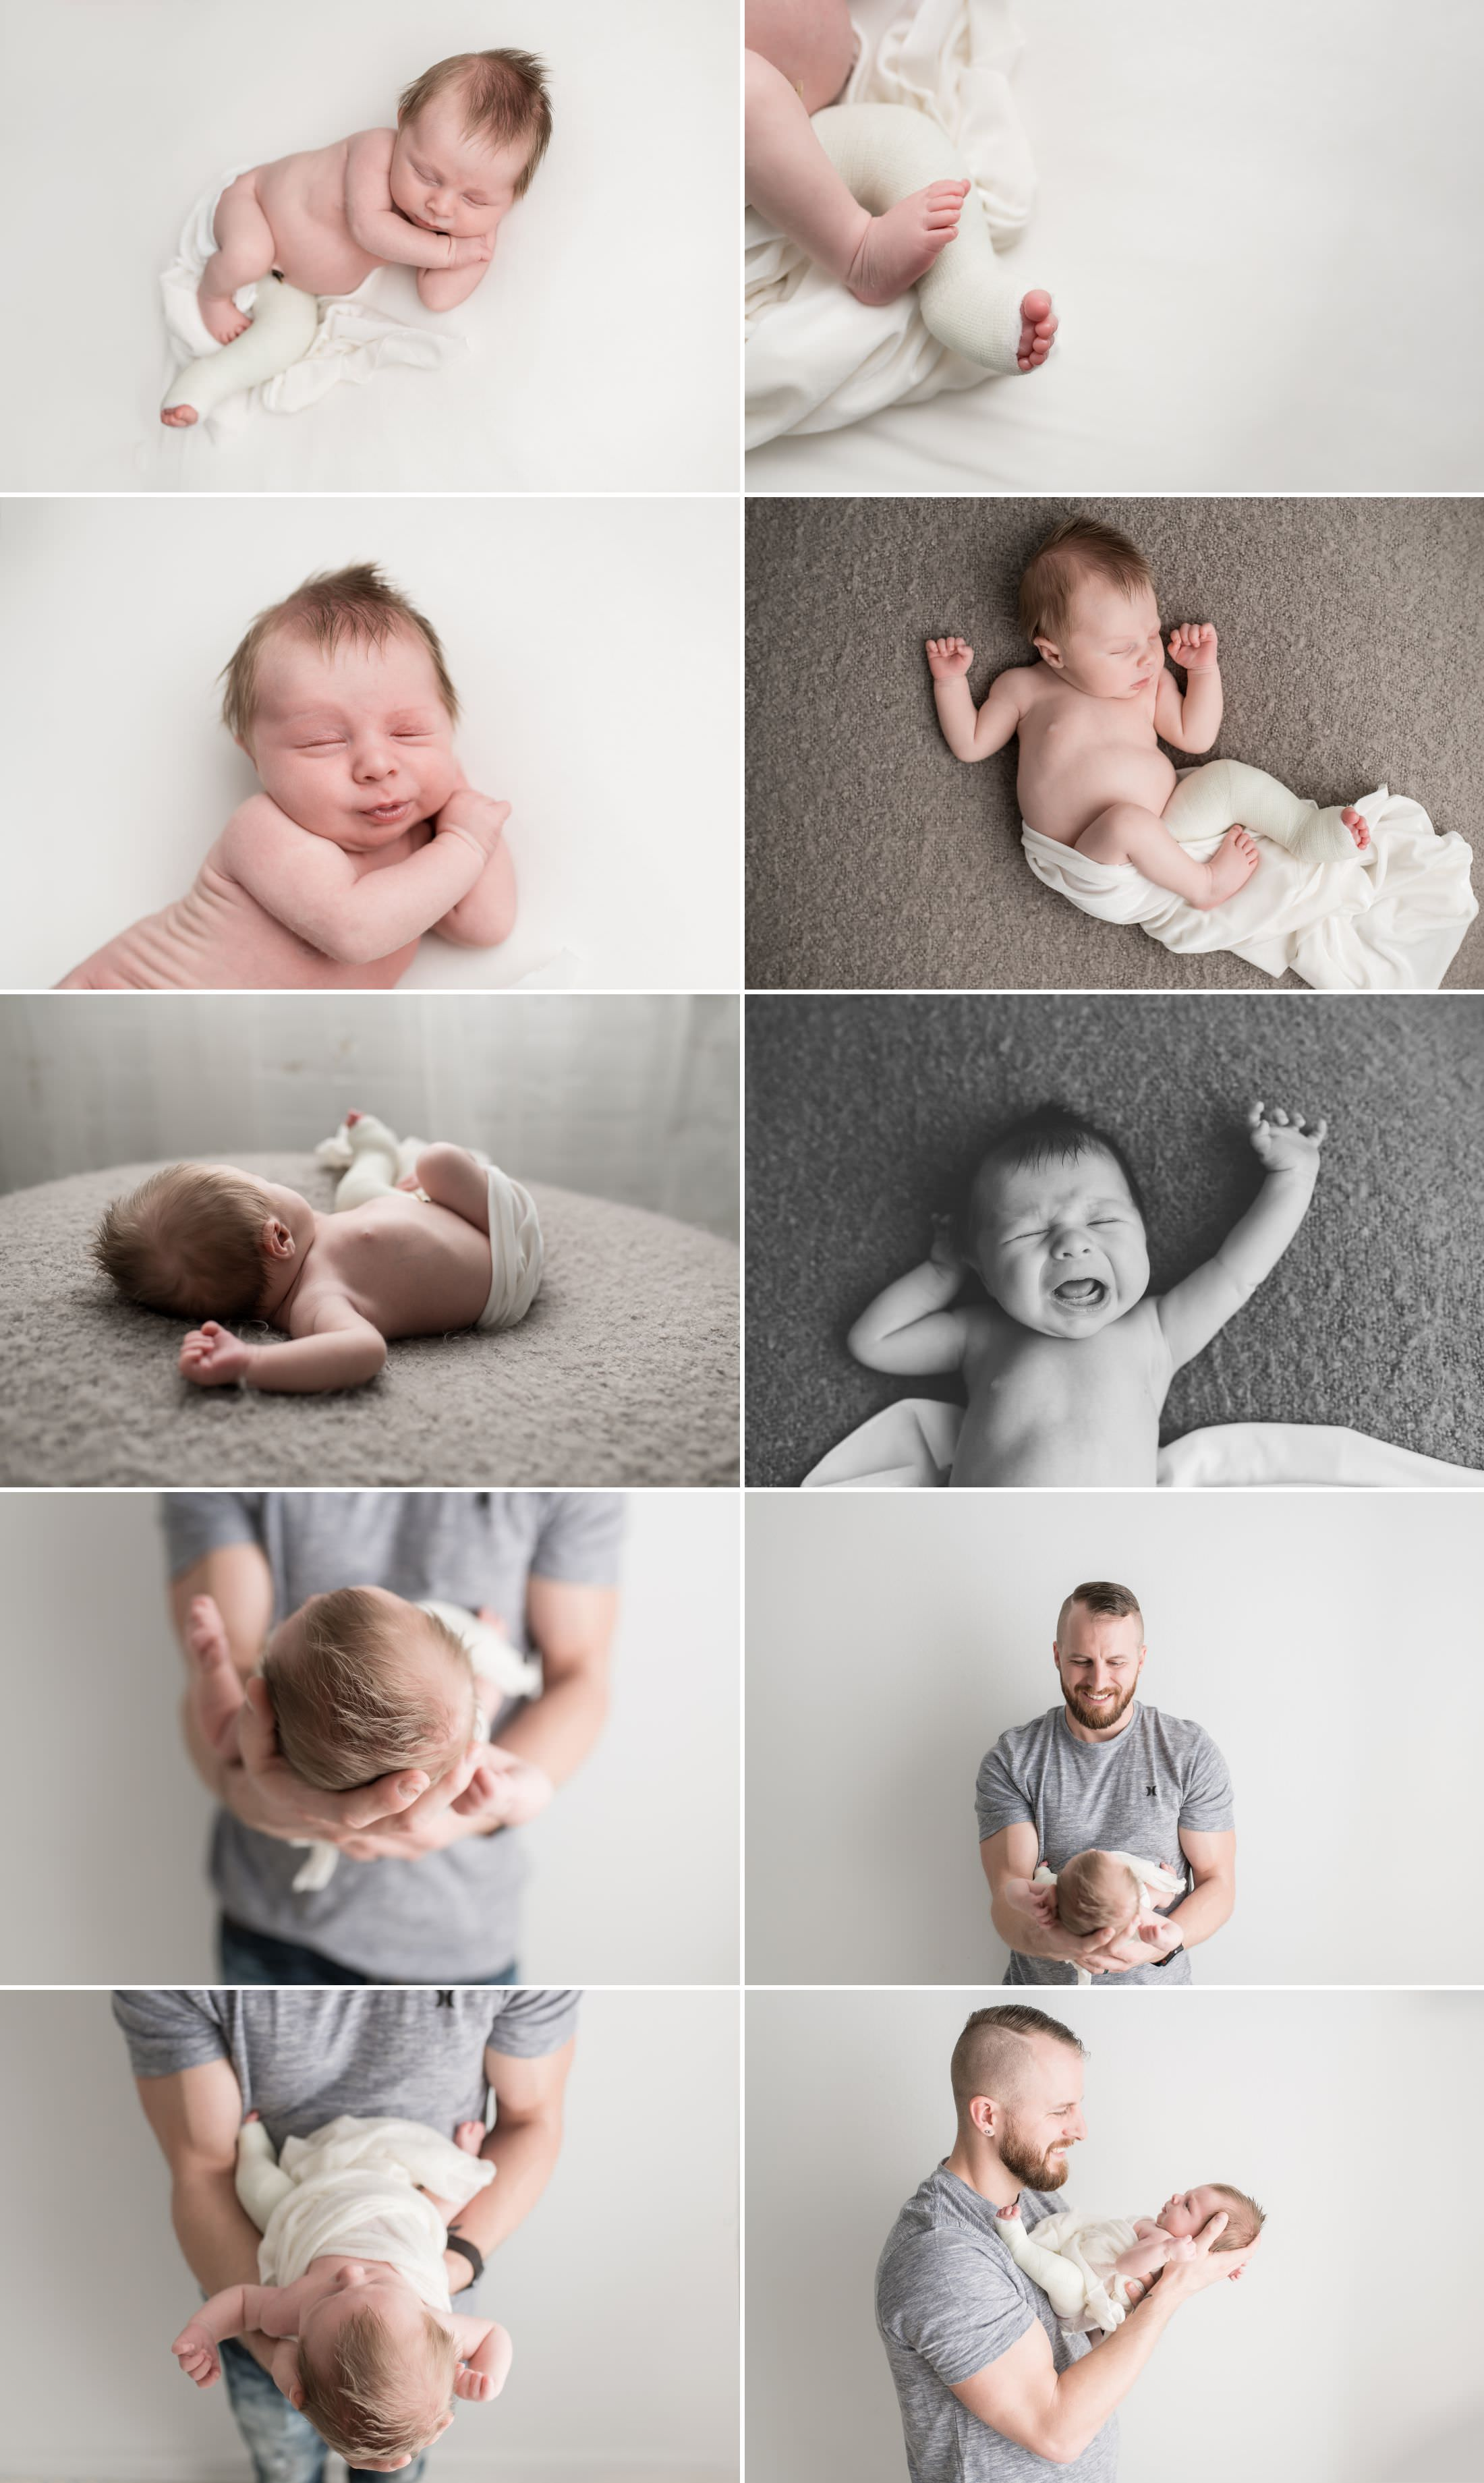 a collage of a baby being held by his father and yawning on a bed